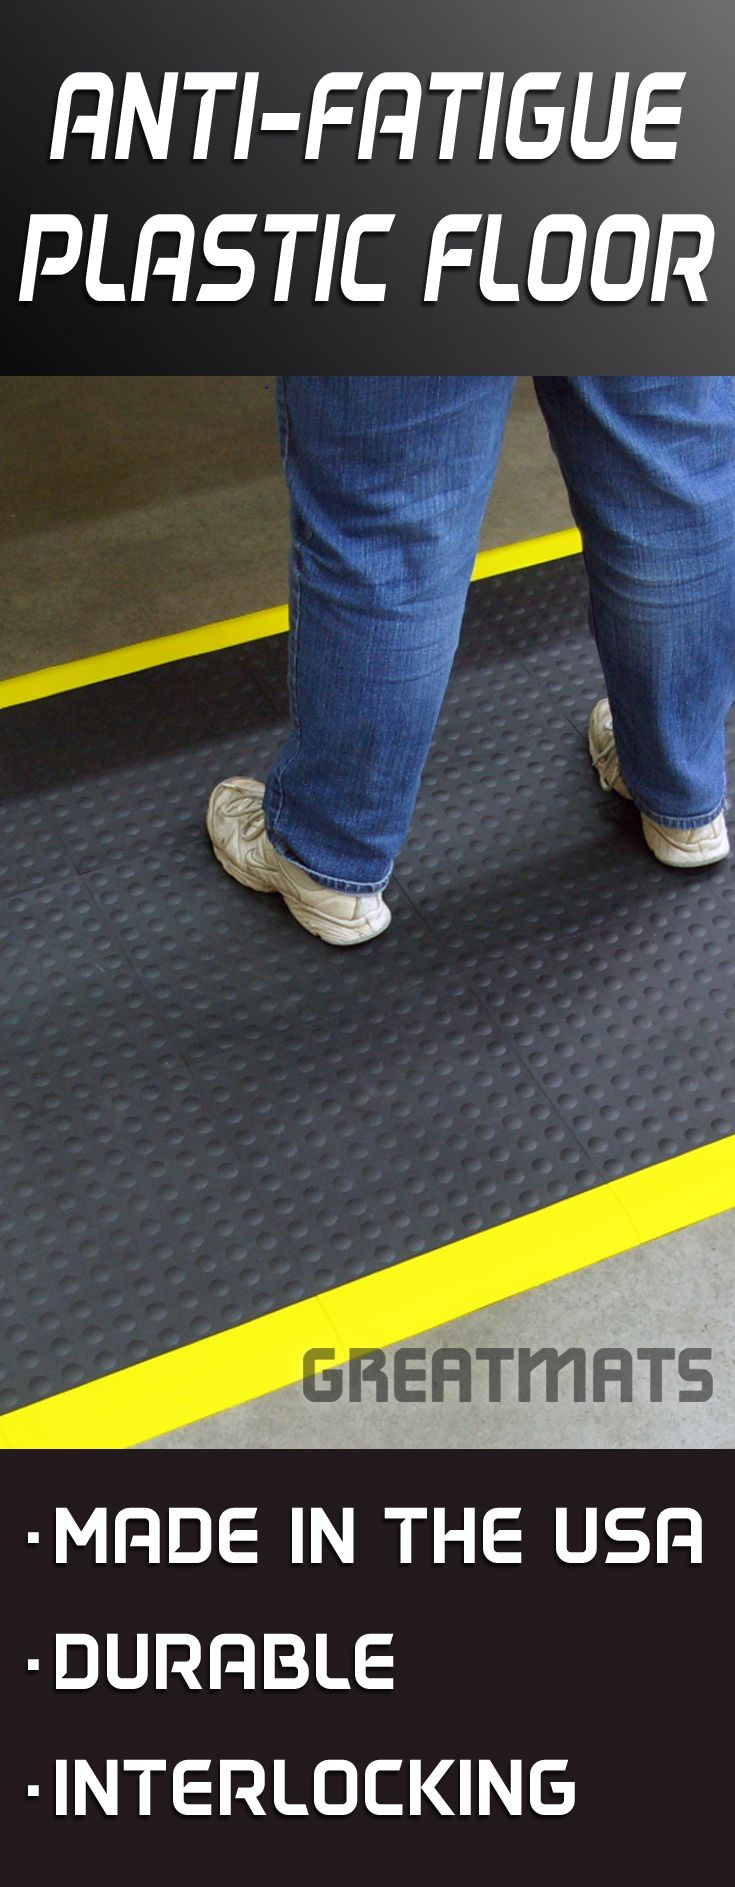 22 best plastic flooring images on pinterest basement flooring looking for a plastic floor with ant fatigue benefits try staylock bump top tiles dailygadgetfo Choice Image